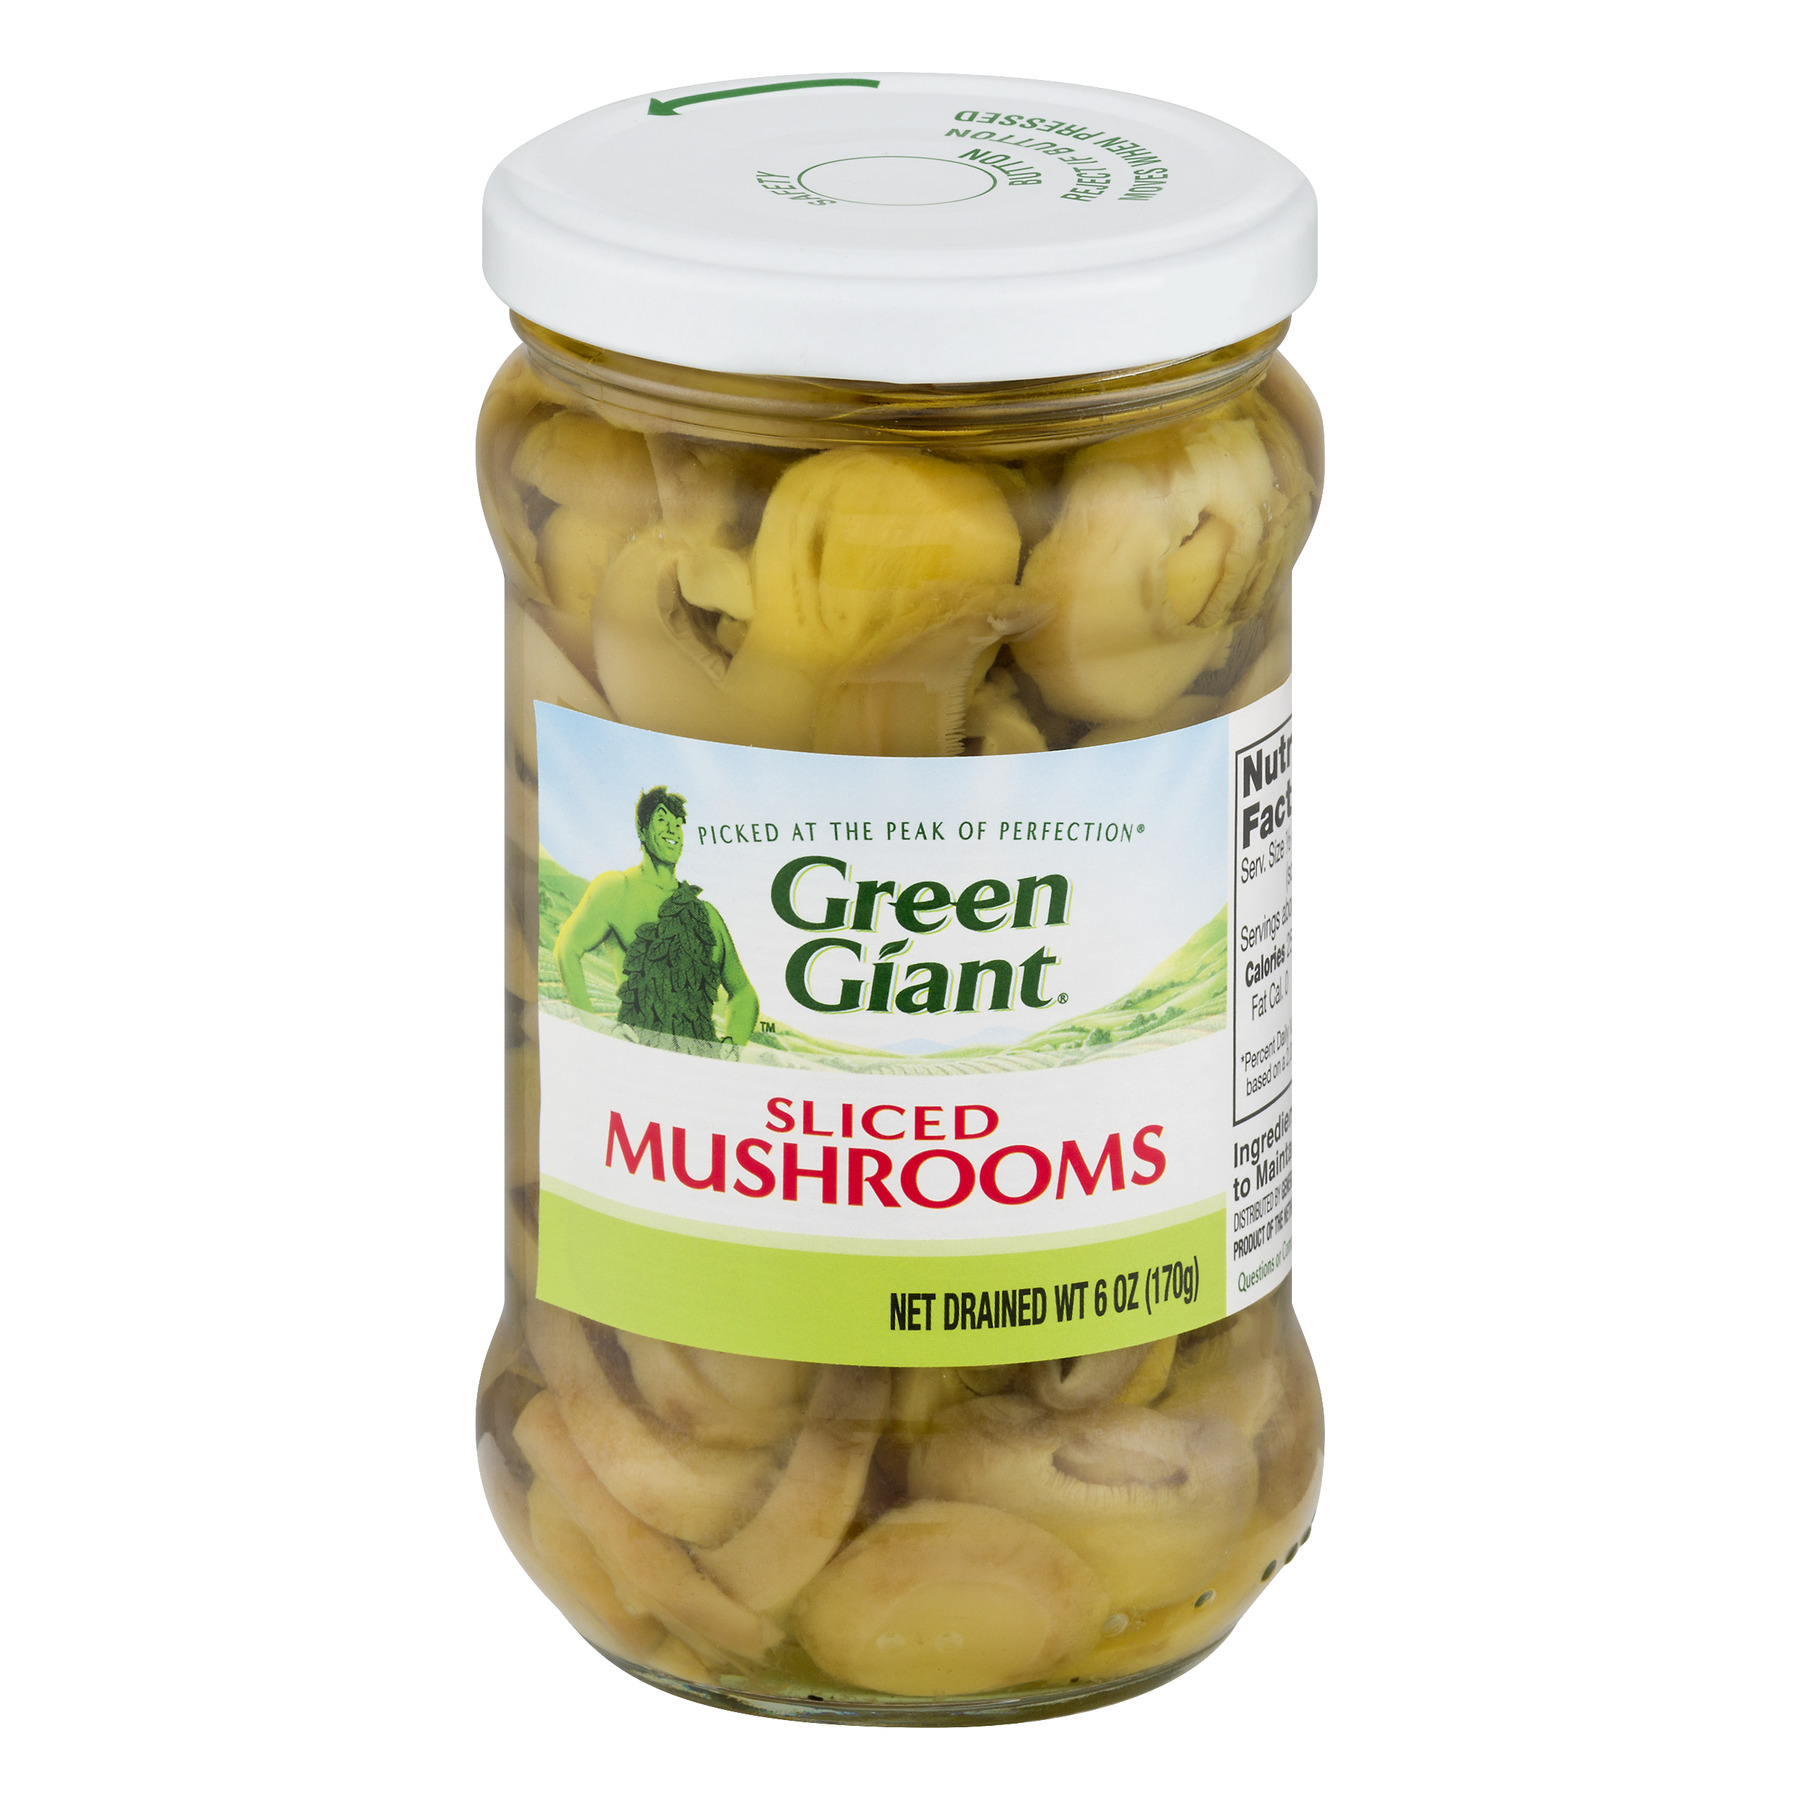 Green Giant Sliced Mushrooms, 6 Oz